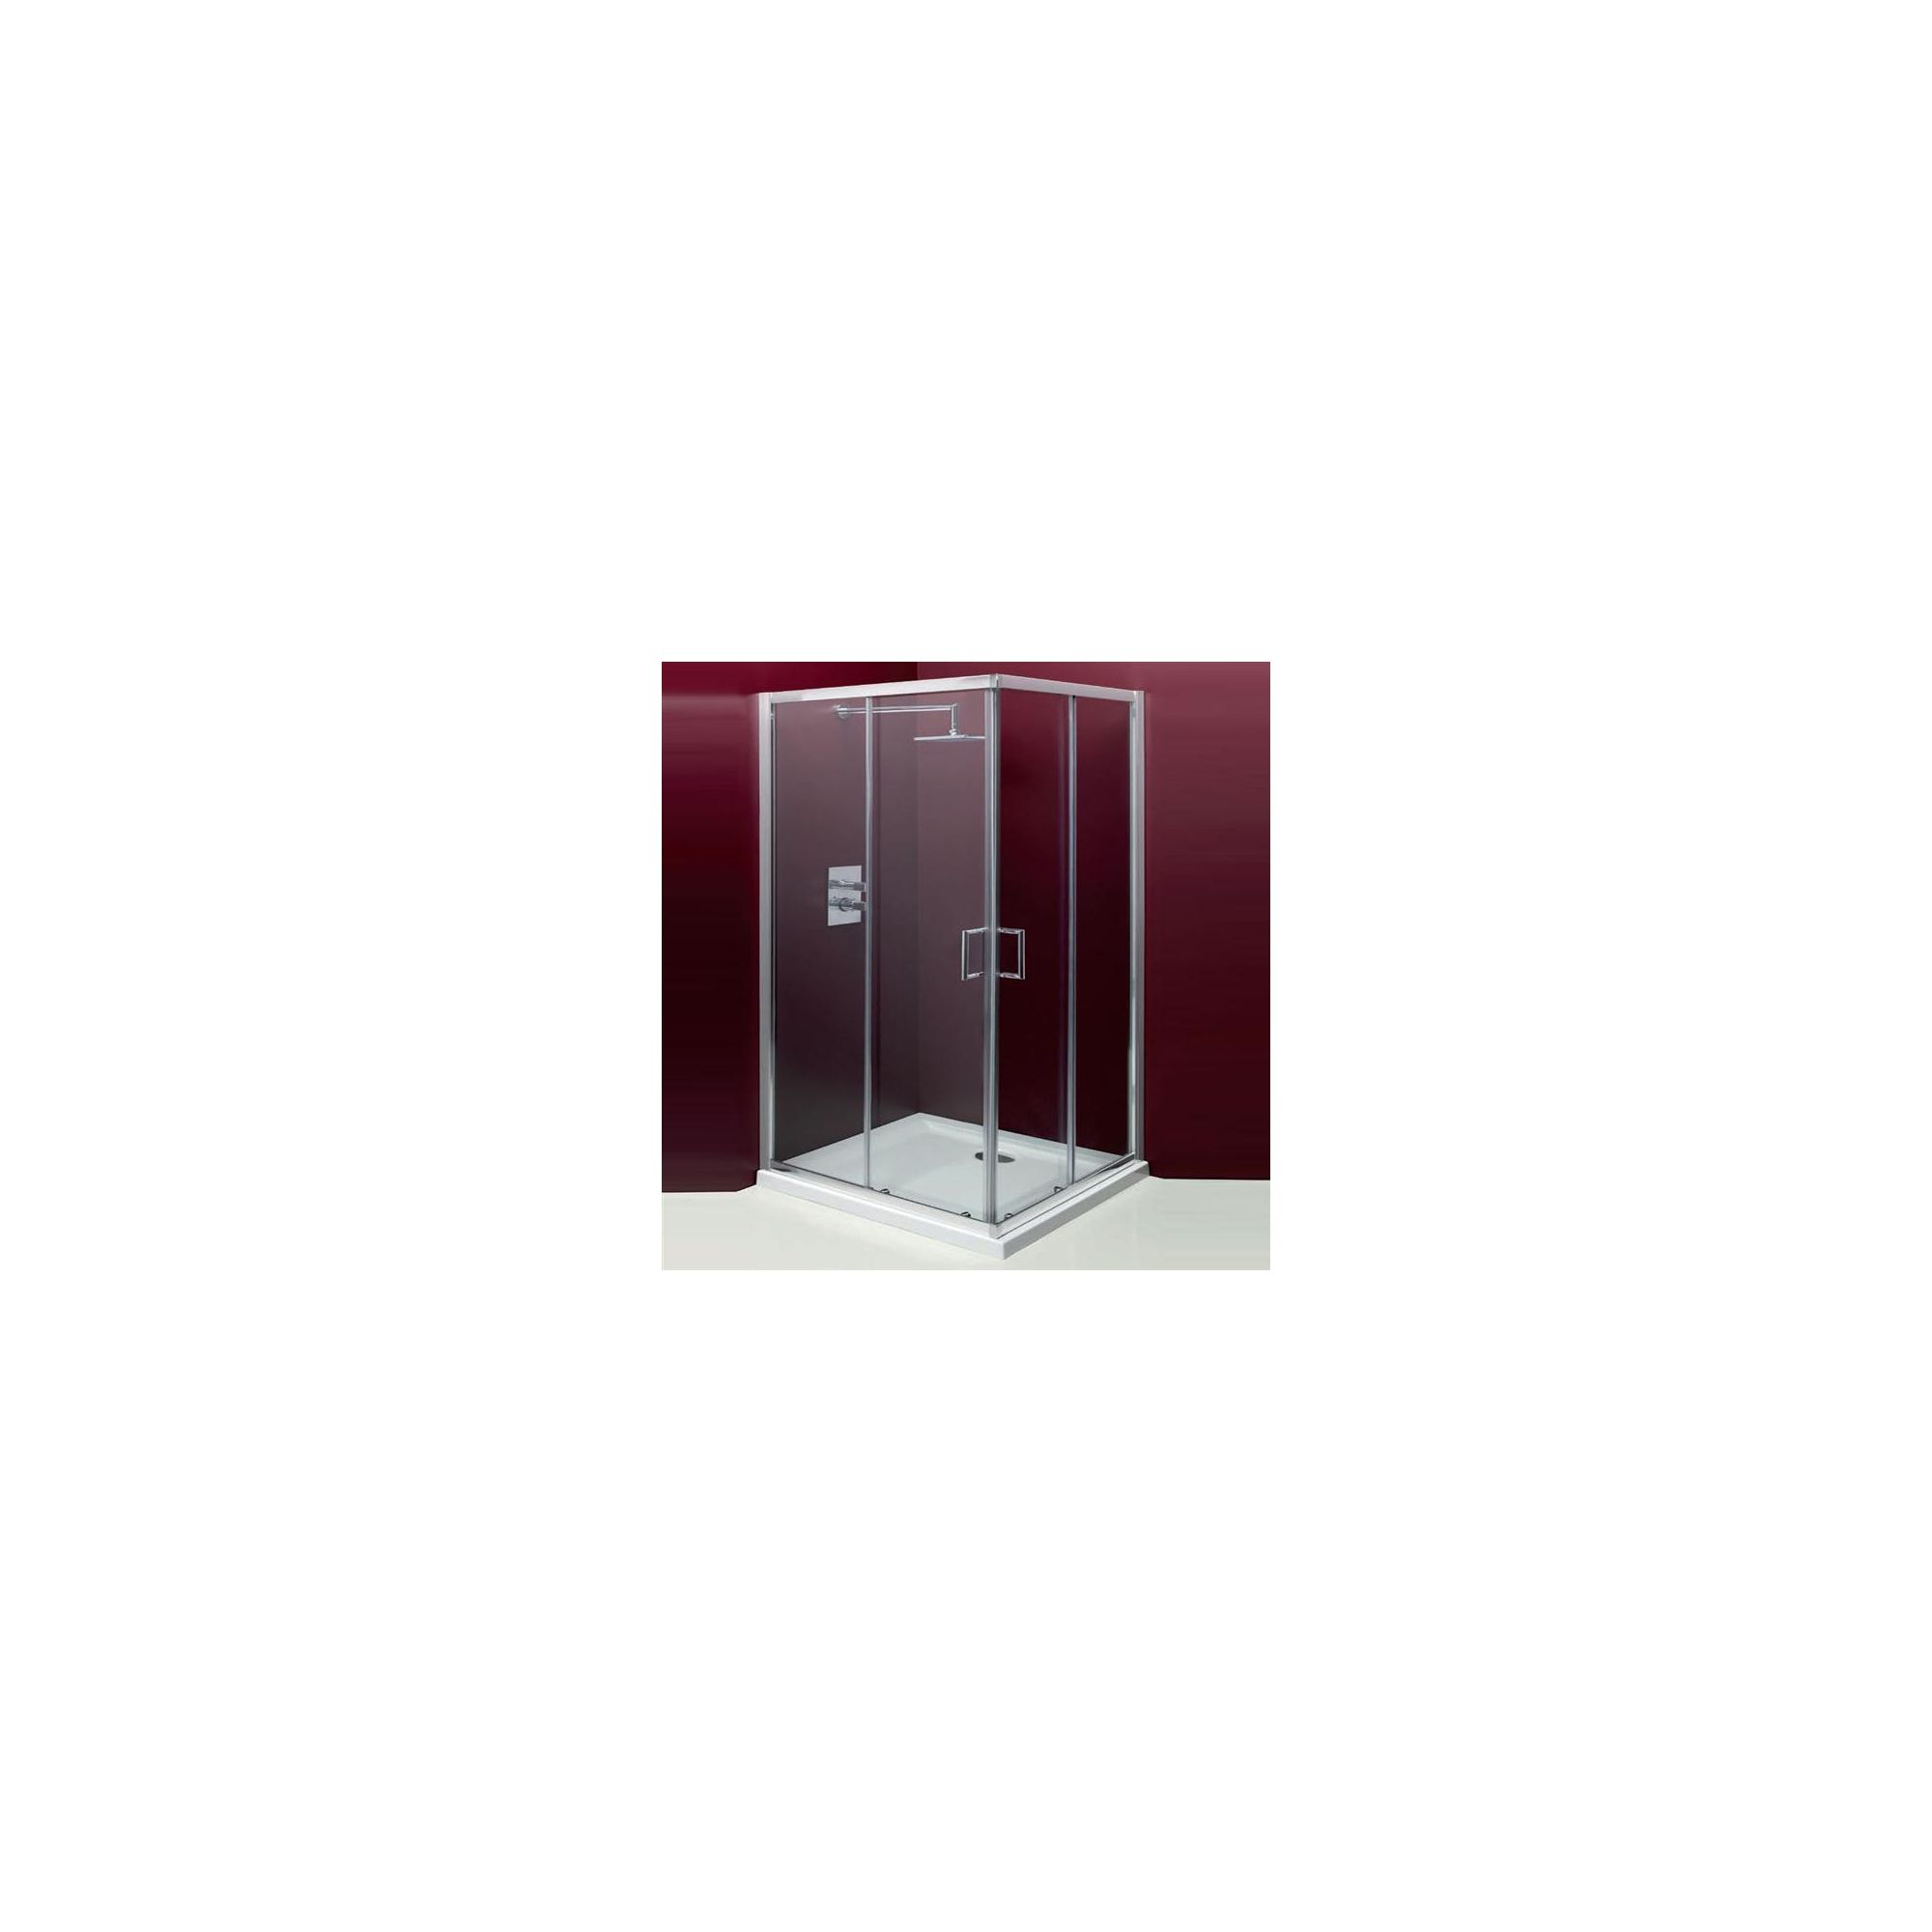 Merlyn Vivid Entree Corner Entry Shower Enclosure, 800mm x 800mm, Low Profile Tray, 6mm Glass at Tesco Direct